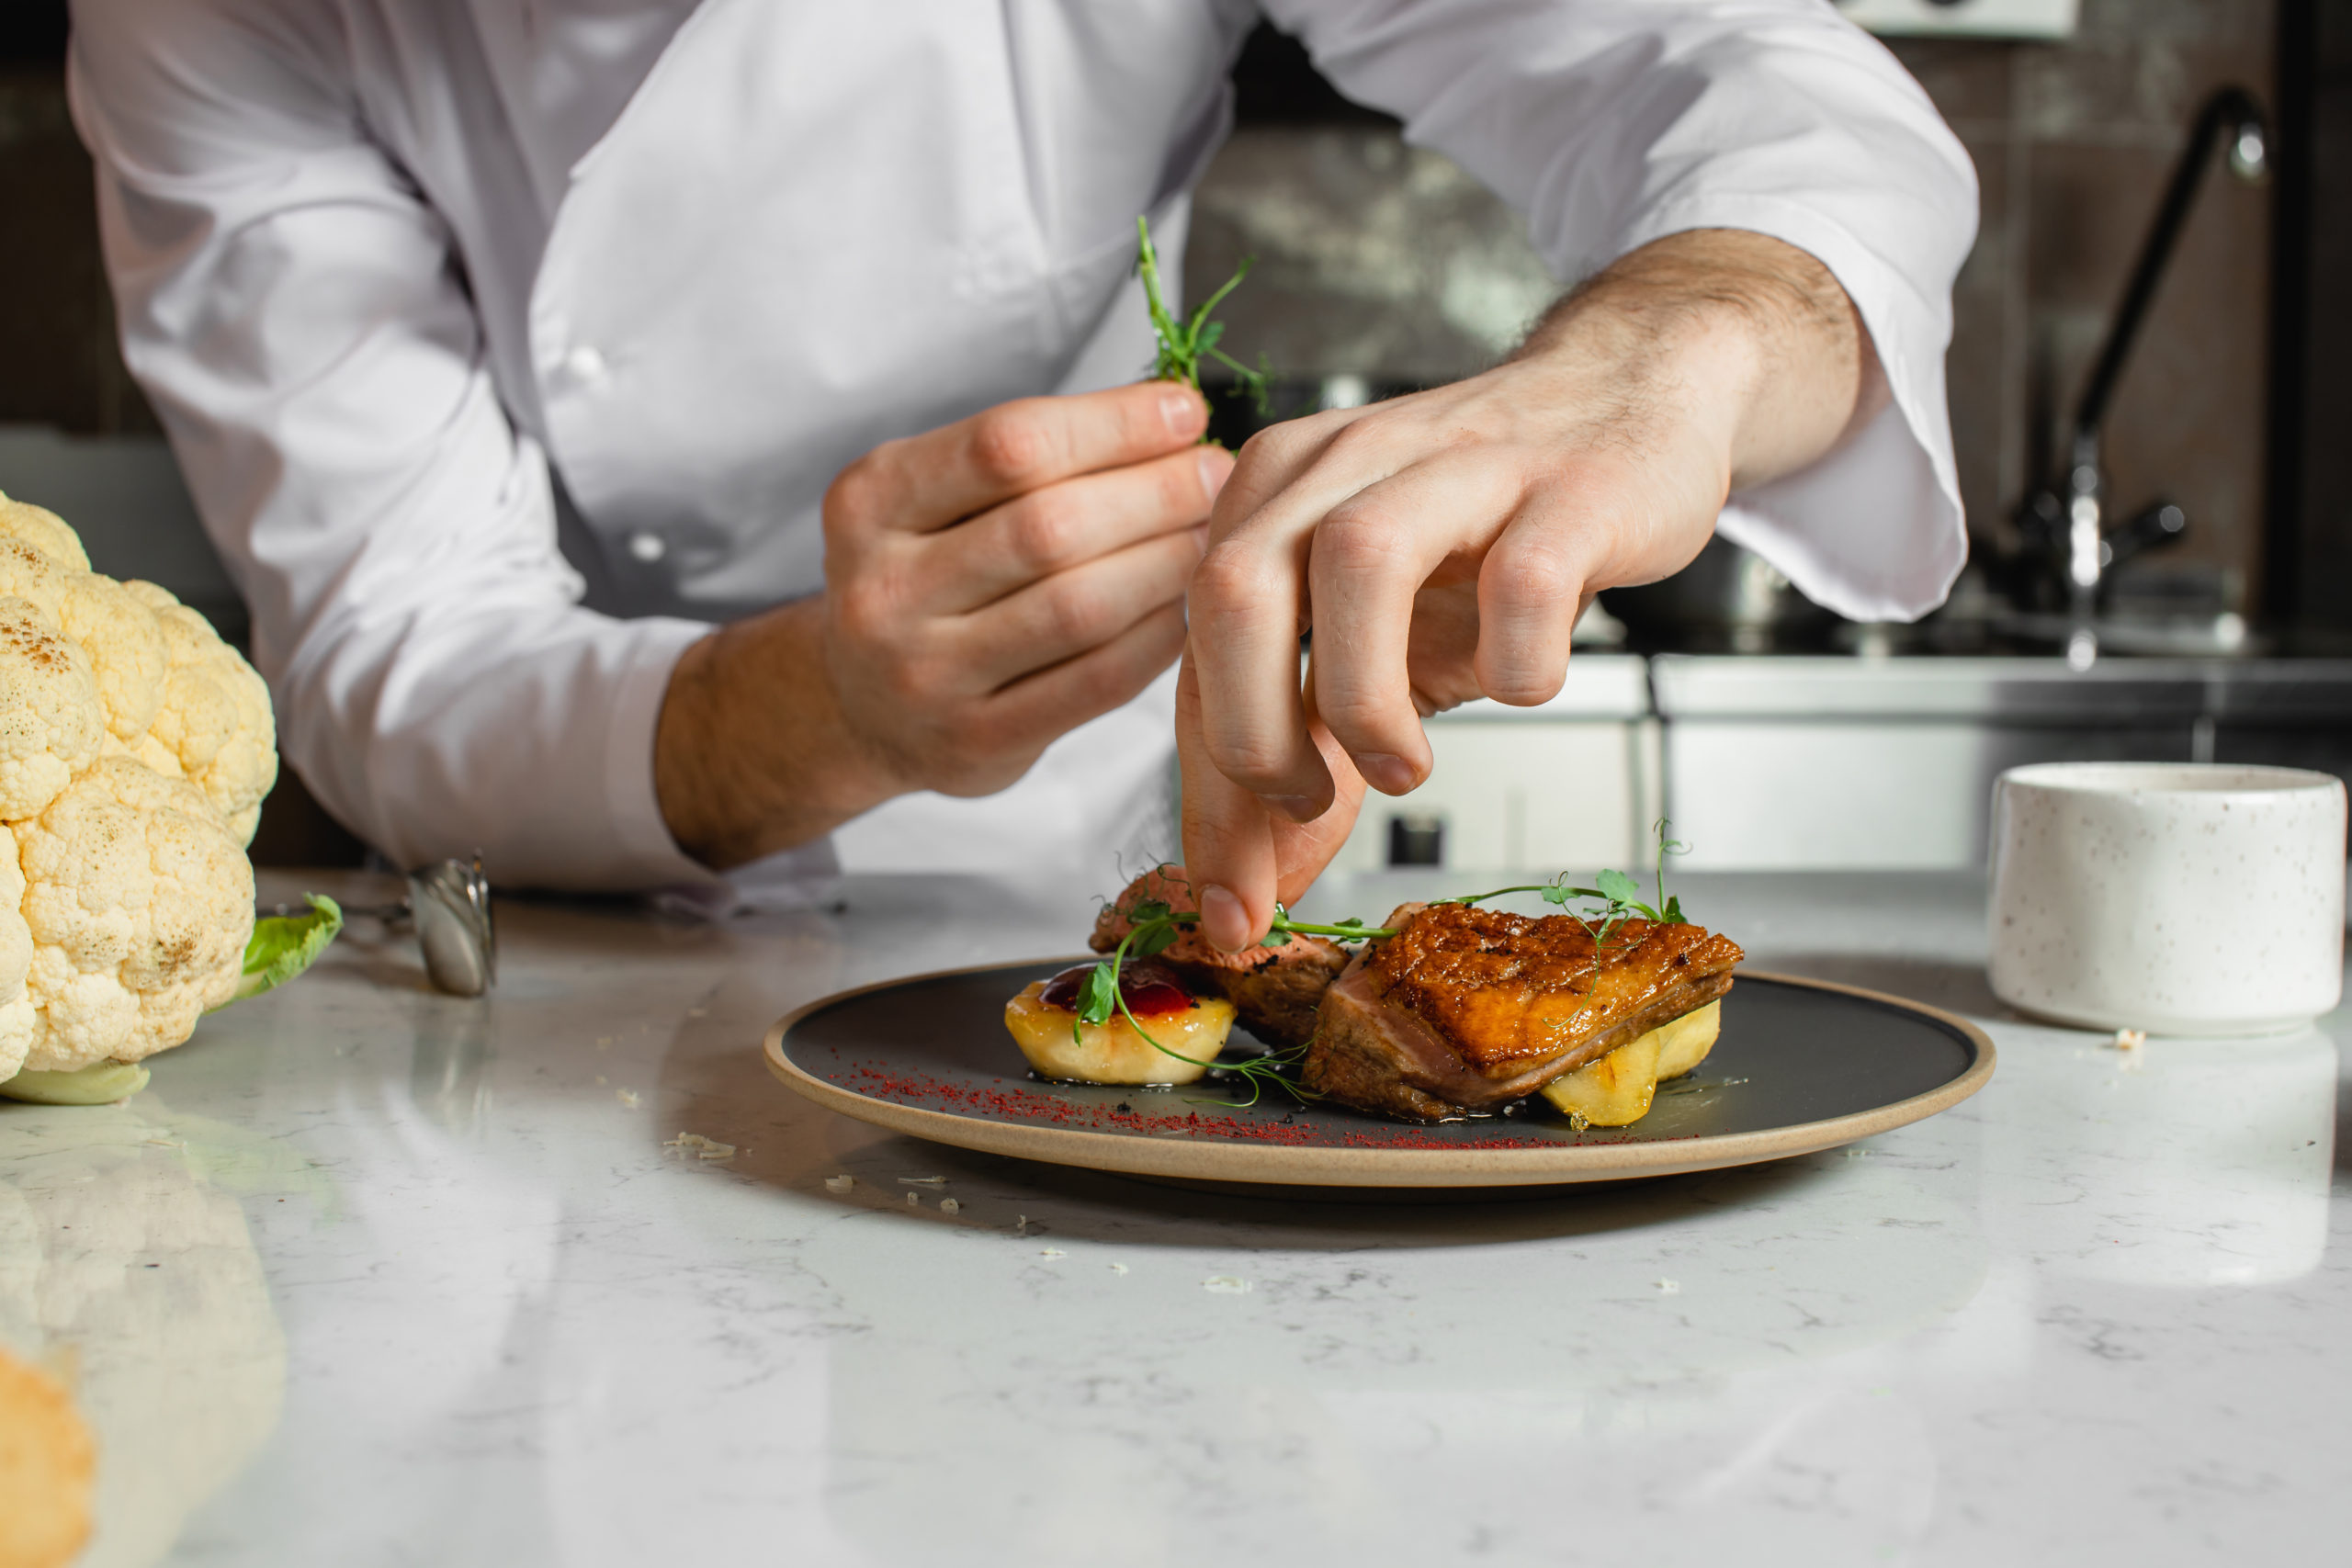 Image of a chef for our ranking of top culinary scholarships